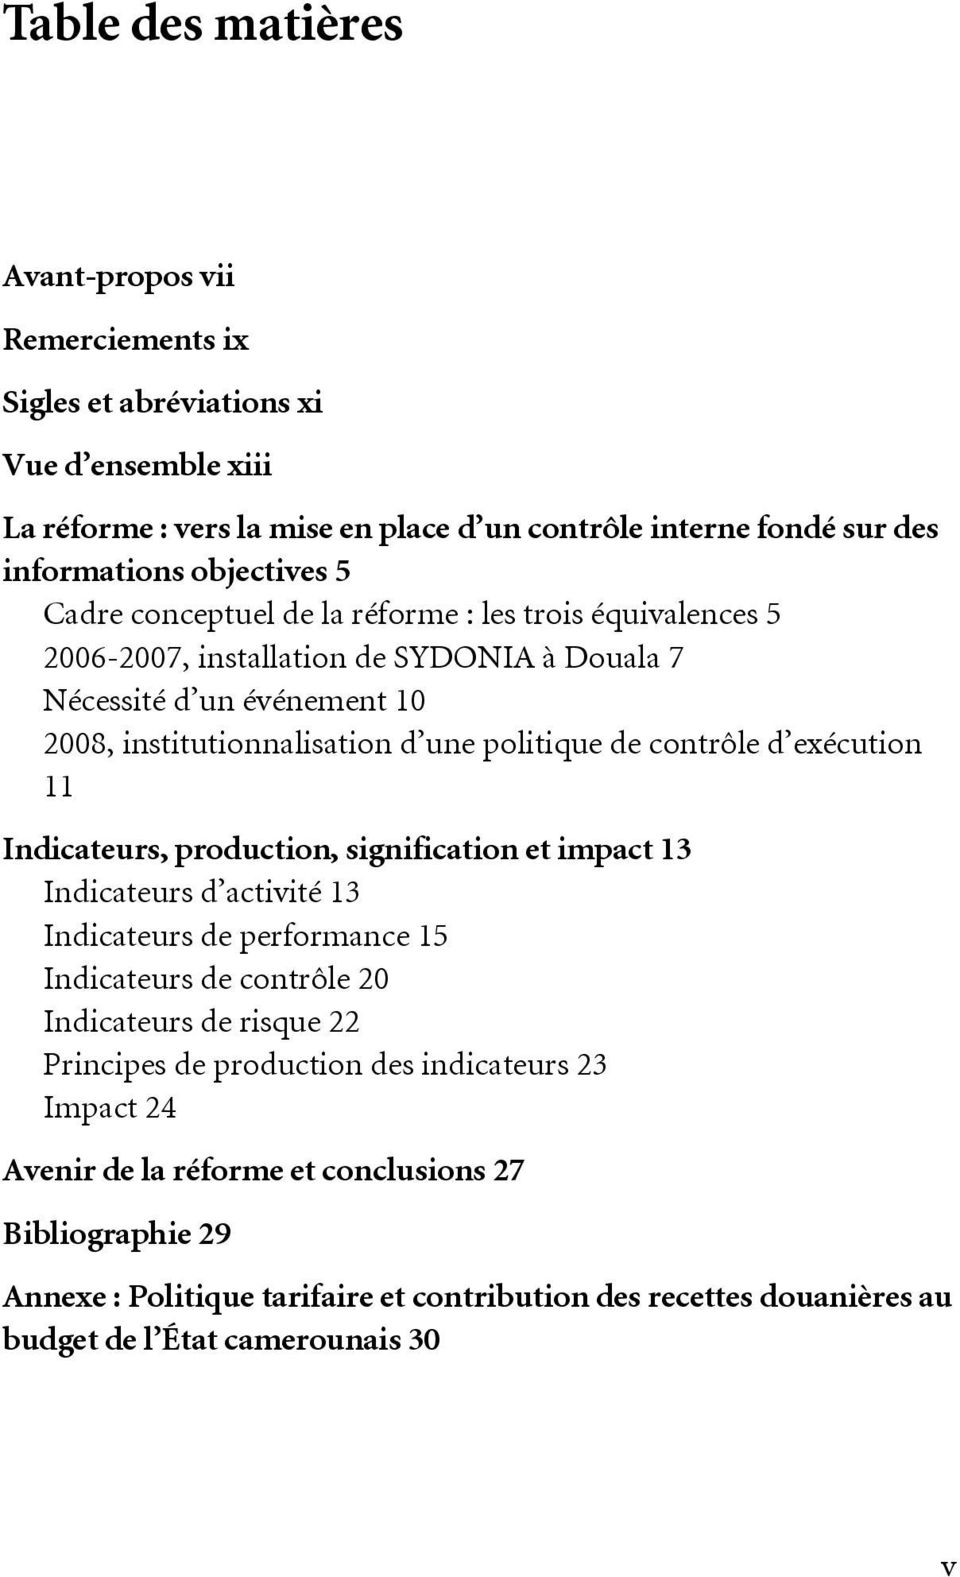 exécution 11 Indicateurs, production, signification et impact 13 Indicateurs d activité 13 Indicateurs de performance 15 Indicateurs de contrôle 20 Indicateurs de risque 22 Principes de